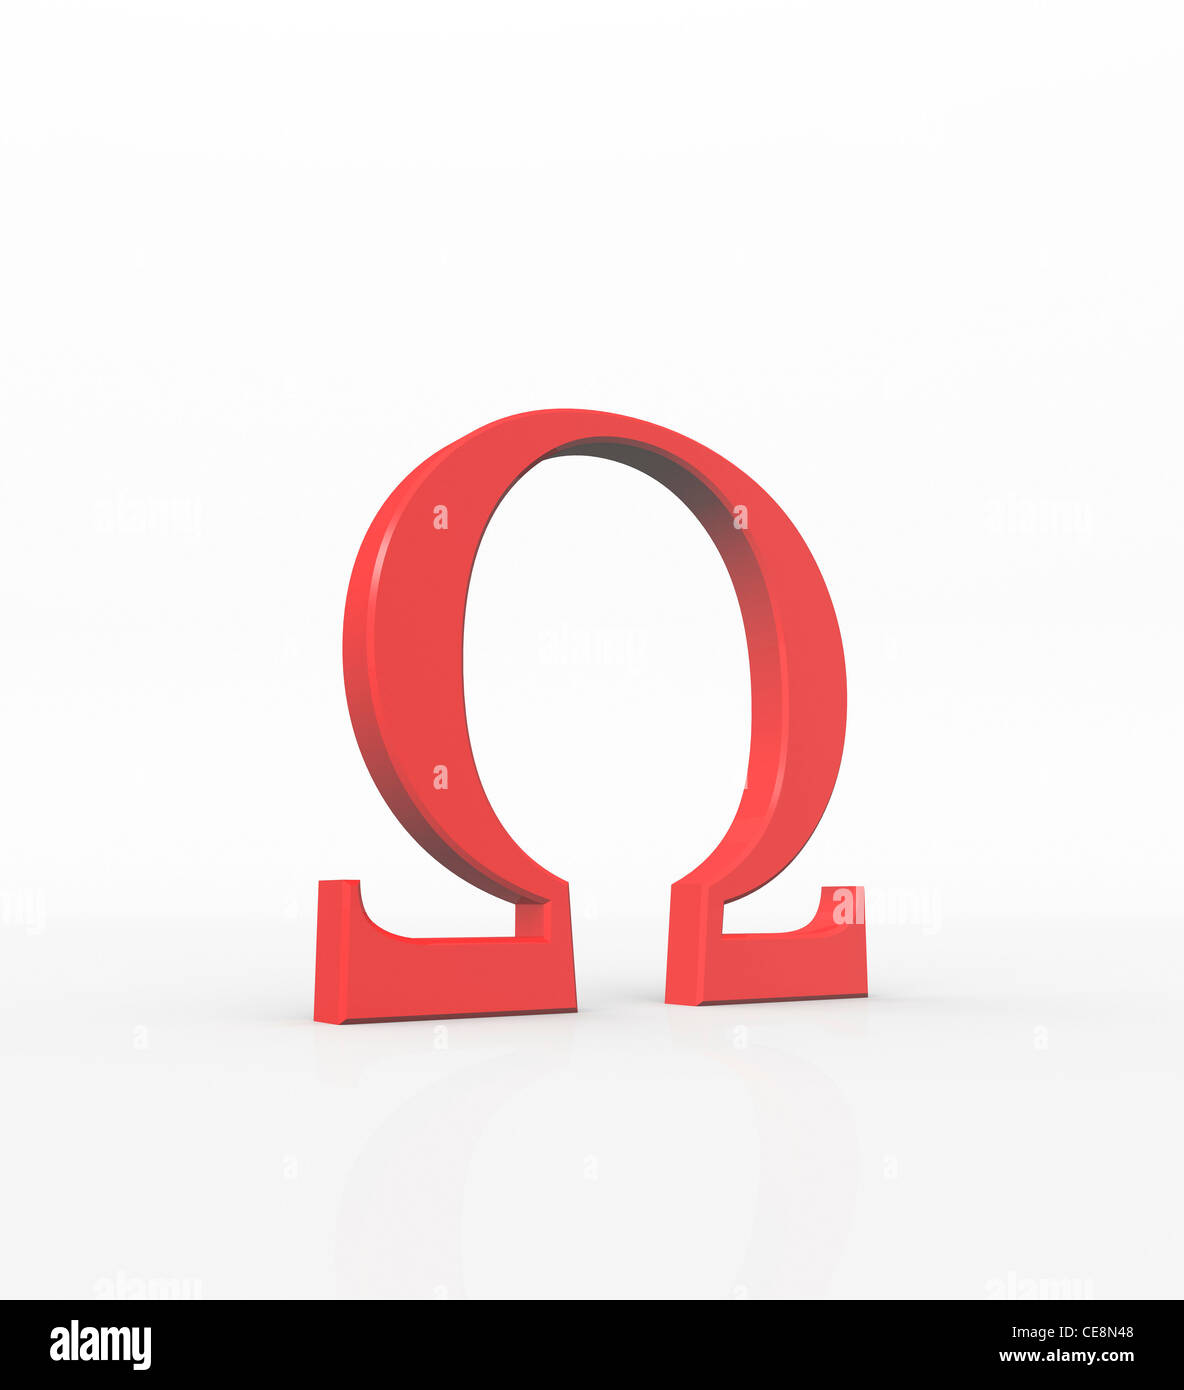 last greek letter alphabet stock photos alphabet stock images 22699 | omega 24th last letter greek alphabet in greek numeric system it value CE8N48